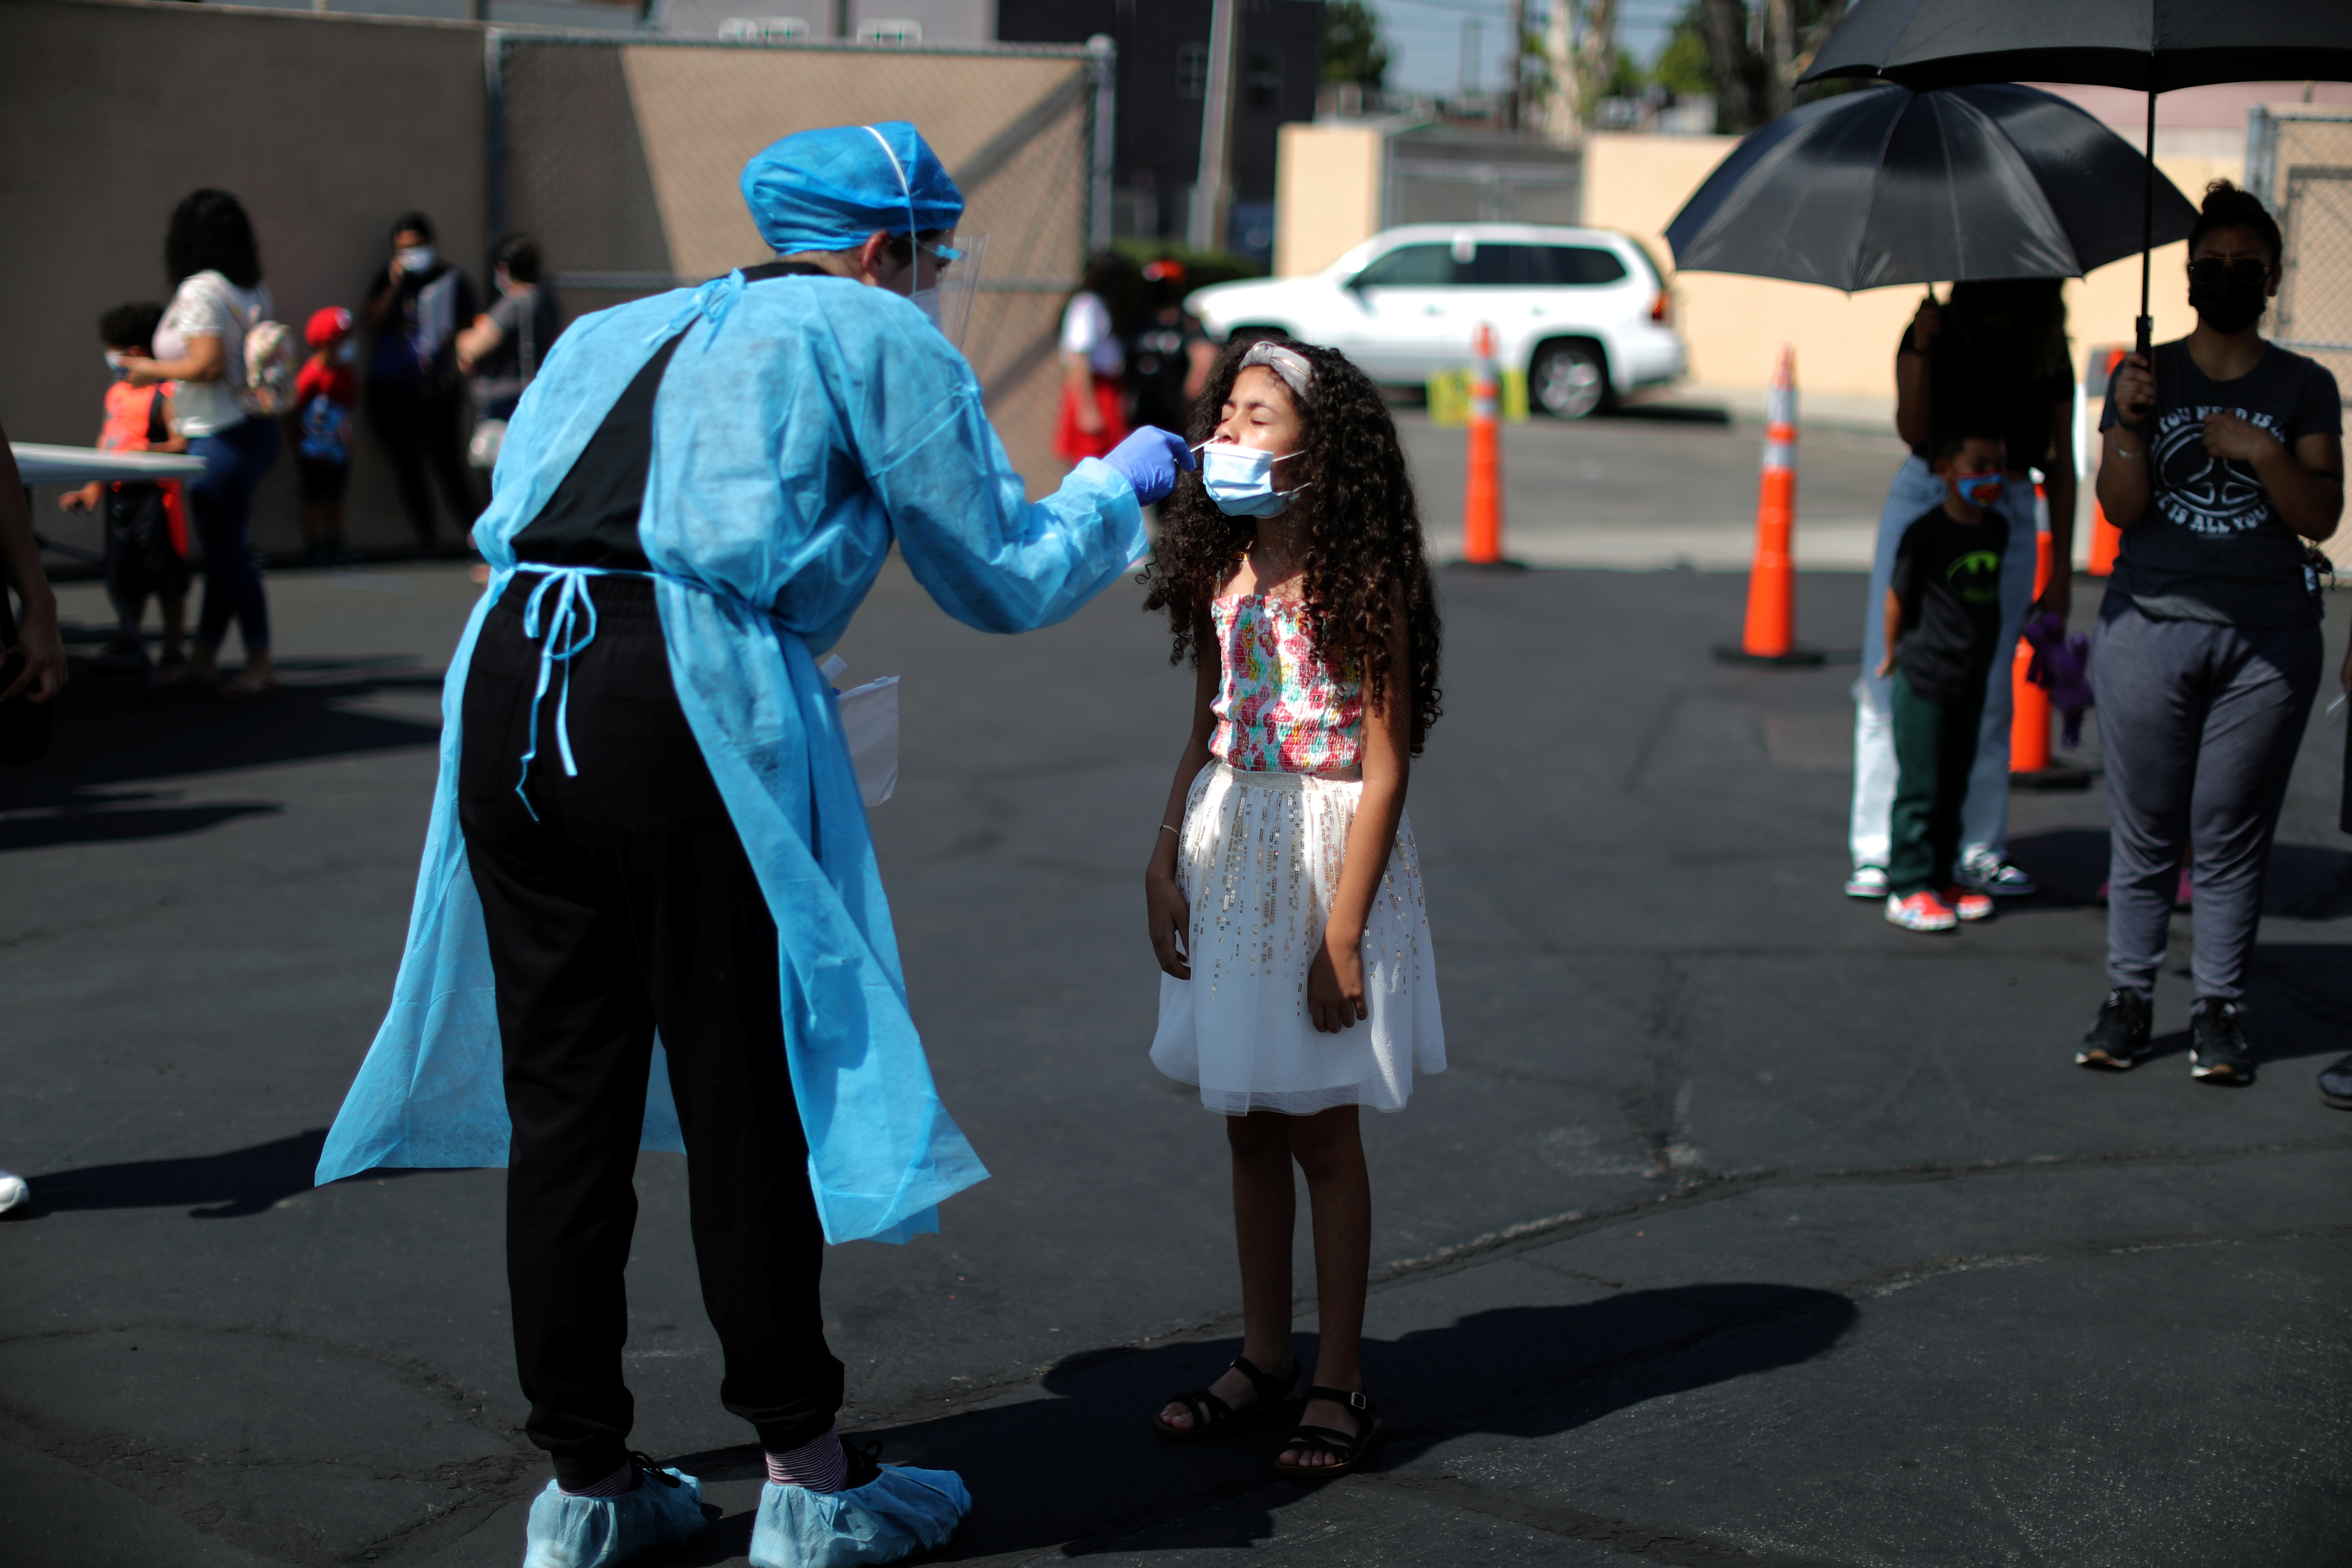 Alisson Argueta, 8, is given a coronavirus disease (COVID-19) test at a back-to-school clinic in South Gate, Los Angeles, California, U.S., August 12, 2021. REUTERS/Lucy Nicholson